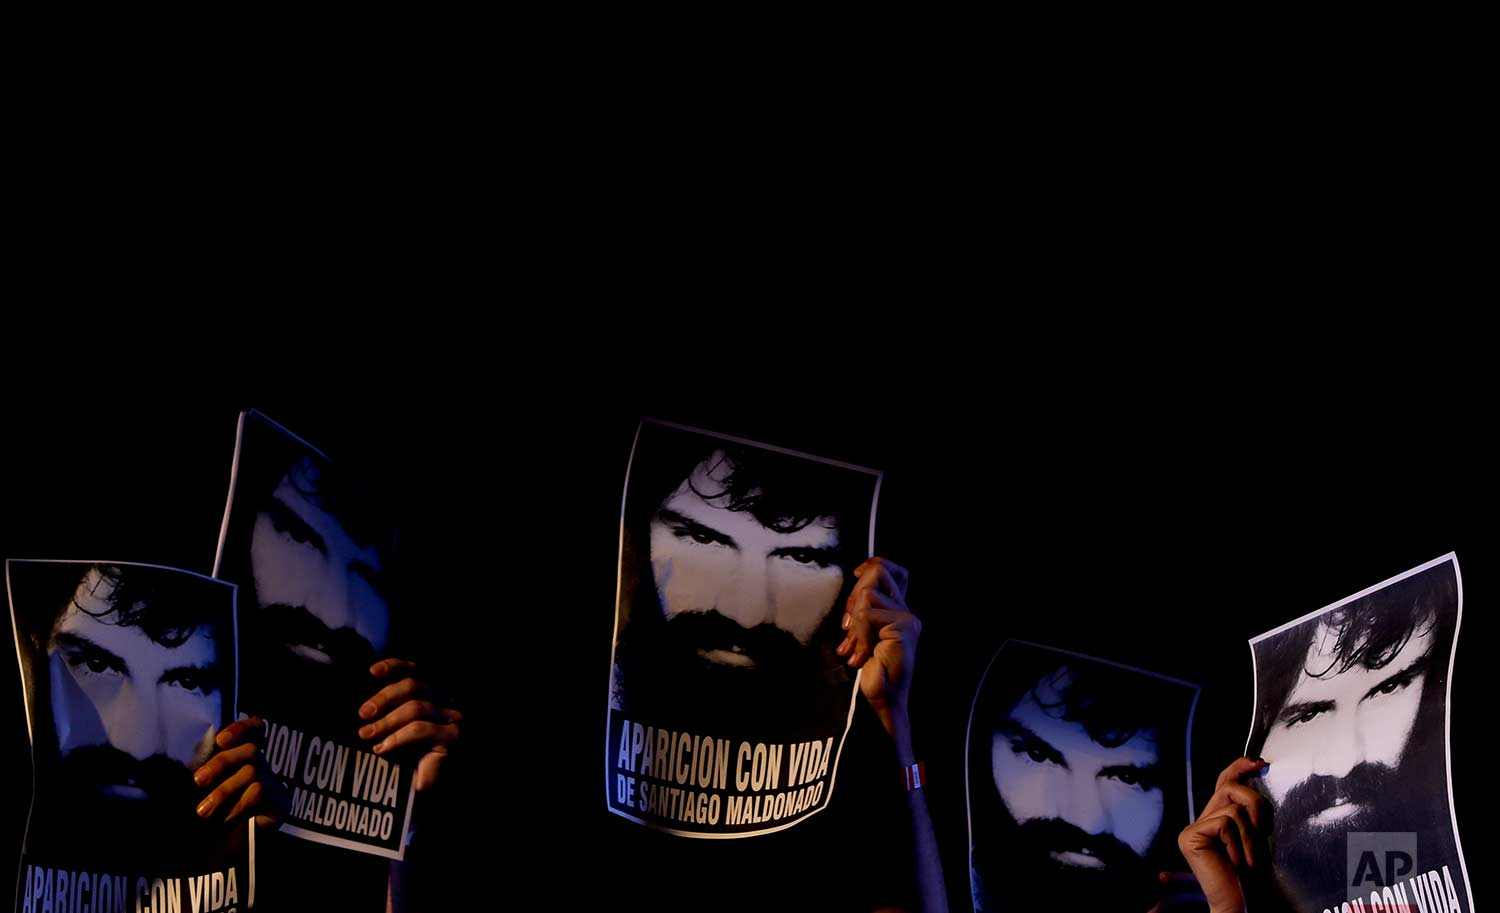 Demonstrators hold photos of missing activist Santiago Maldonado, during a protest at Plaza de Mayo in Buenos Aires, Argentina, Friday, Sept. 1, 2017. (AP Photo/Natacha Pisarenko)